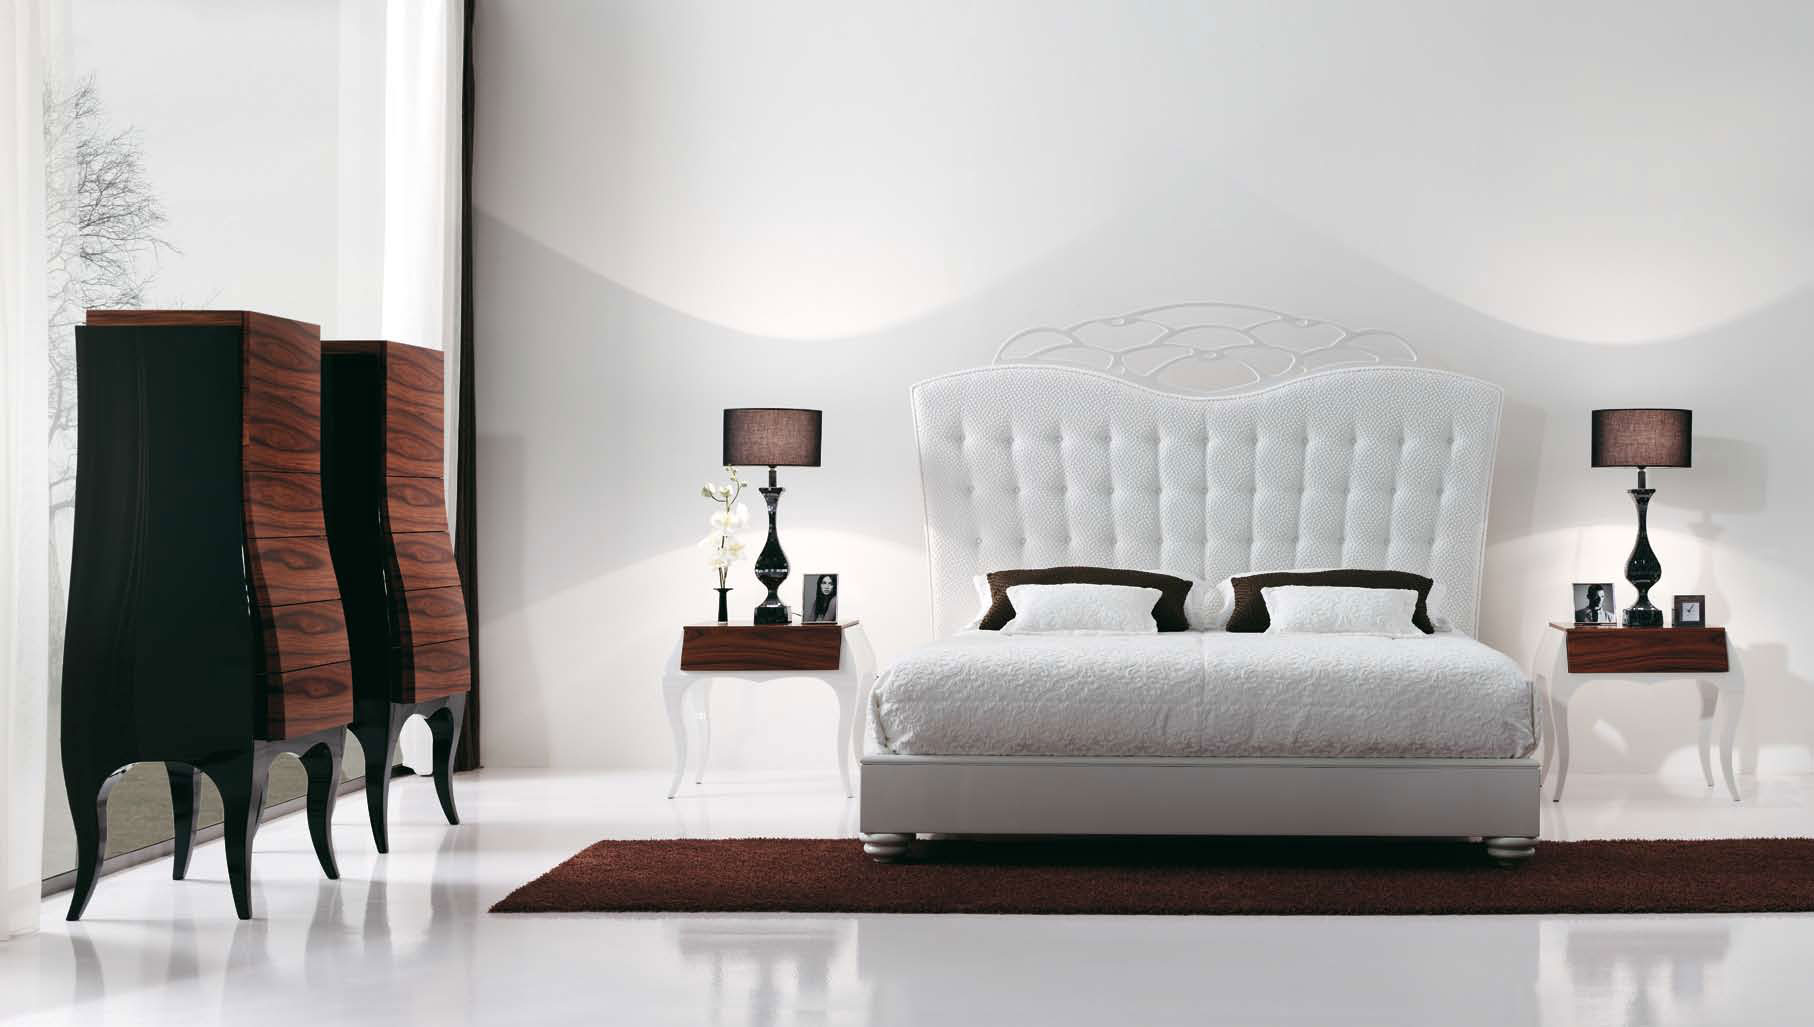 Outstanding White Bedroom Furniture Design Ideas 1814 x 1027 · 118 kB · jpeg